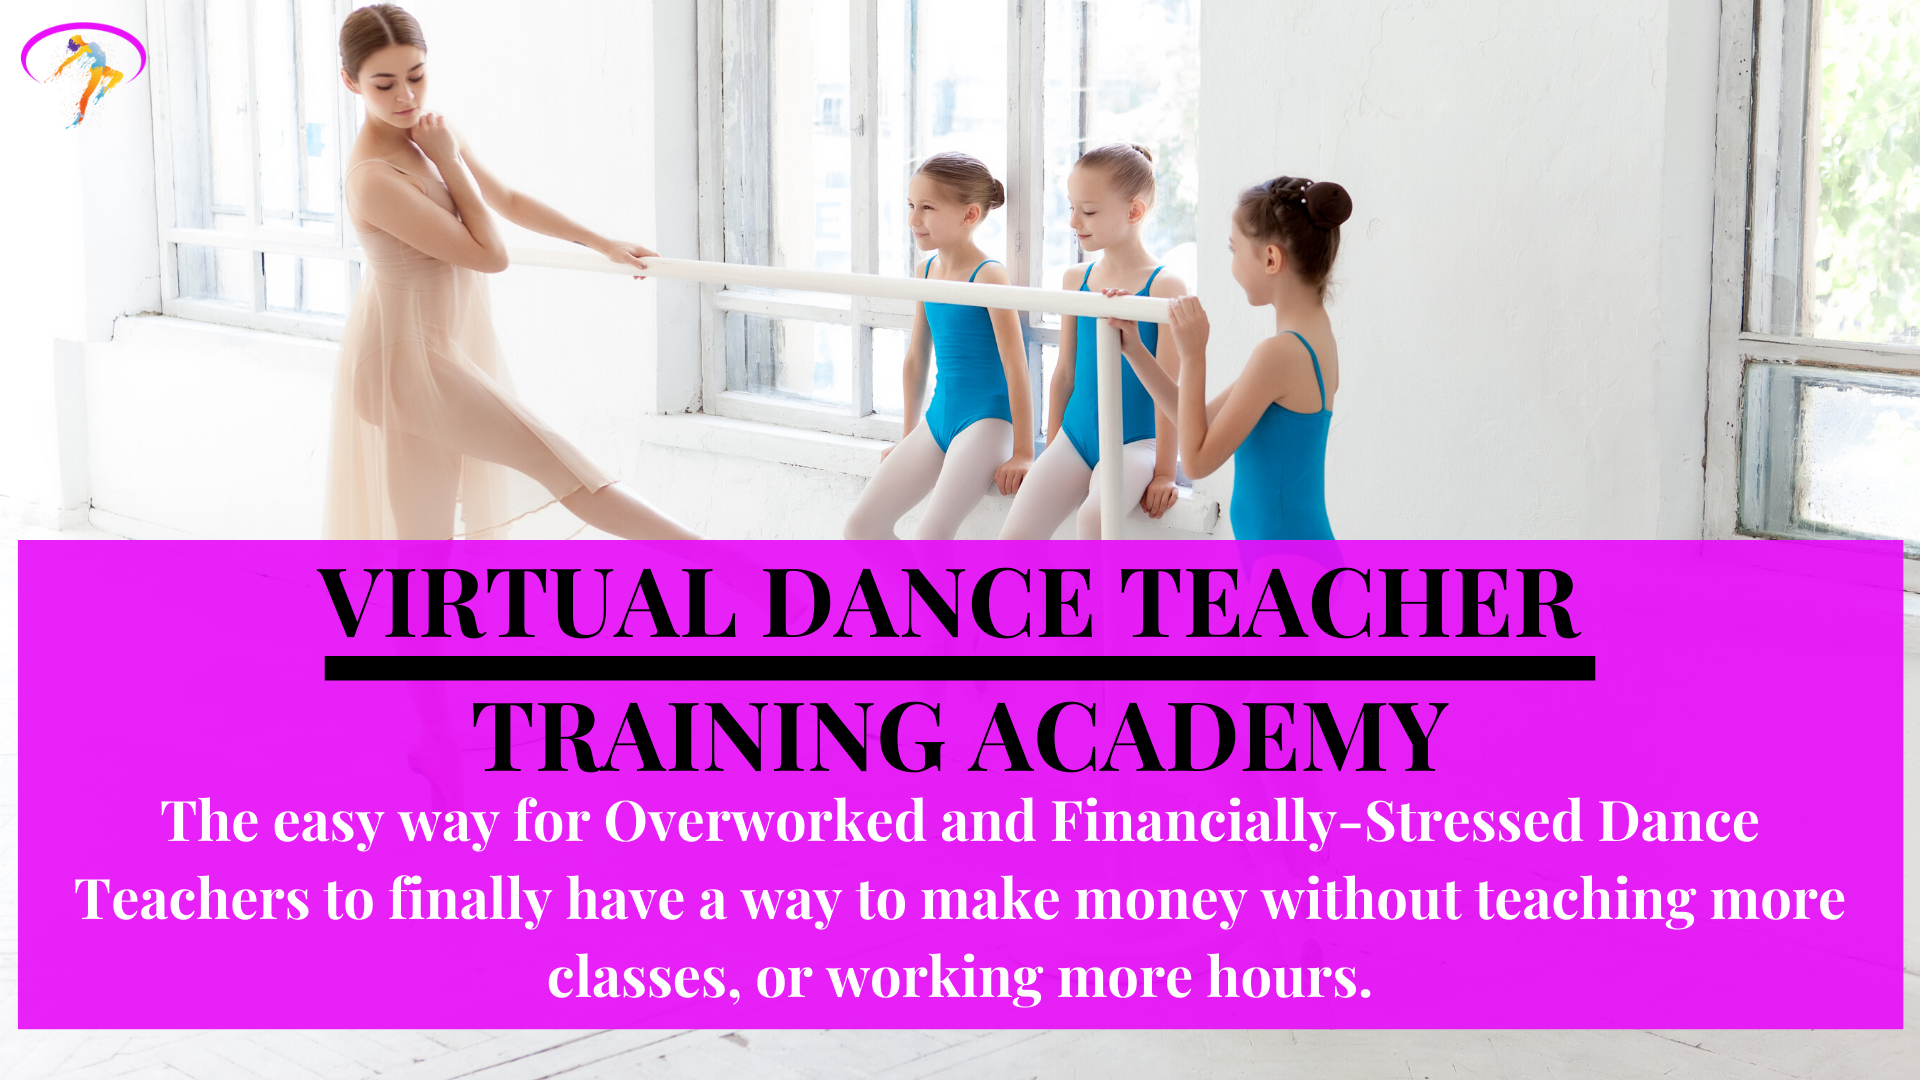 Virtual Dance Teacher Training Academy